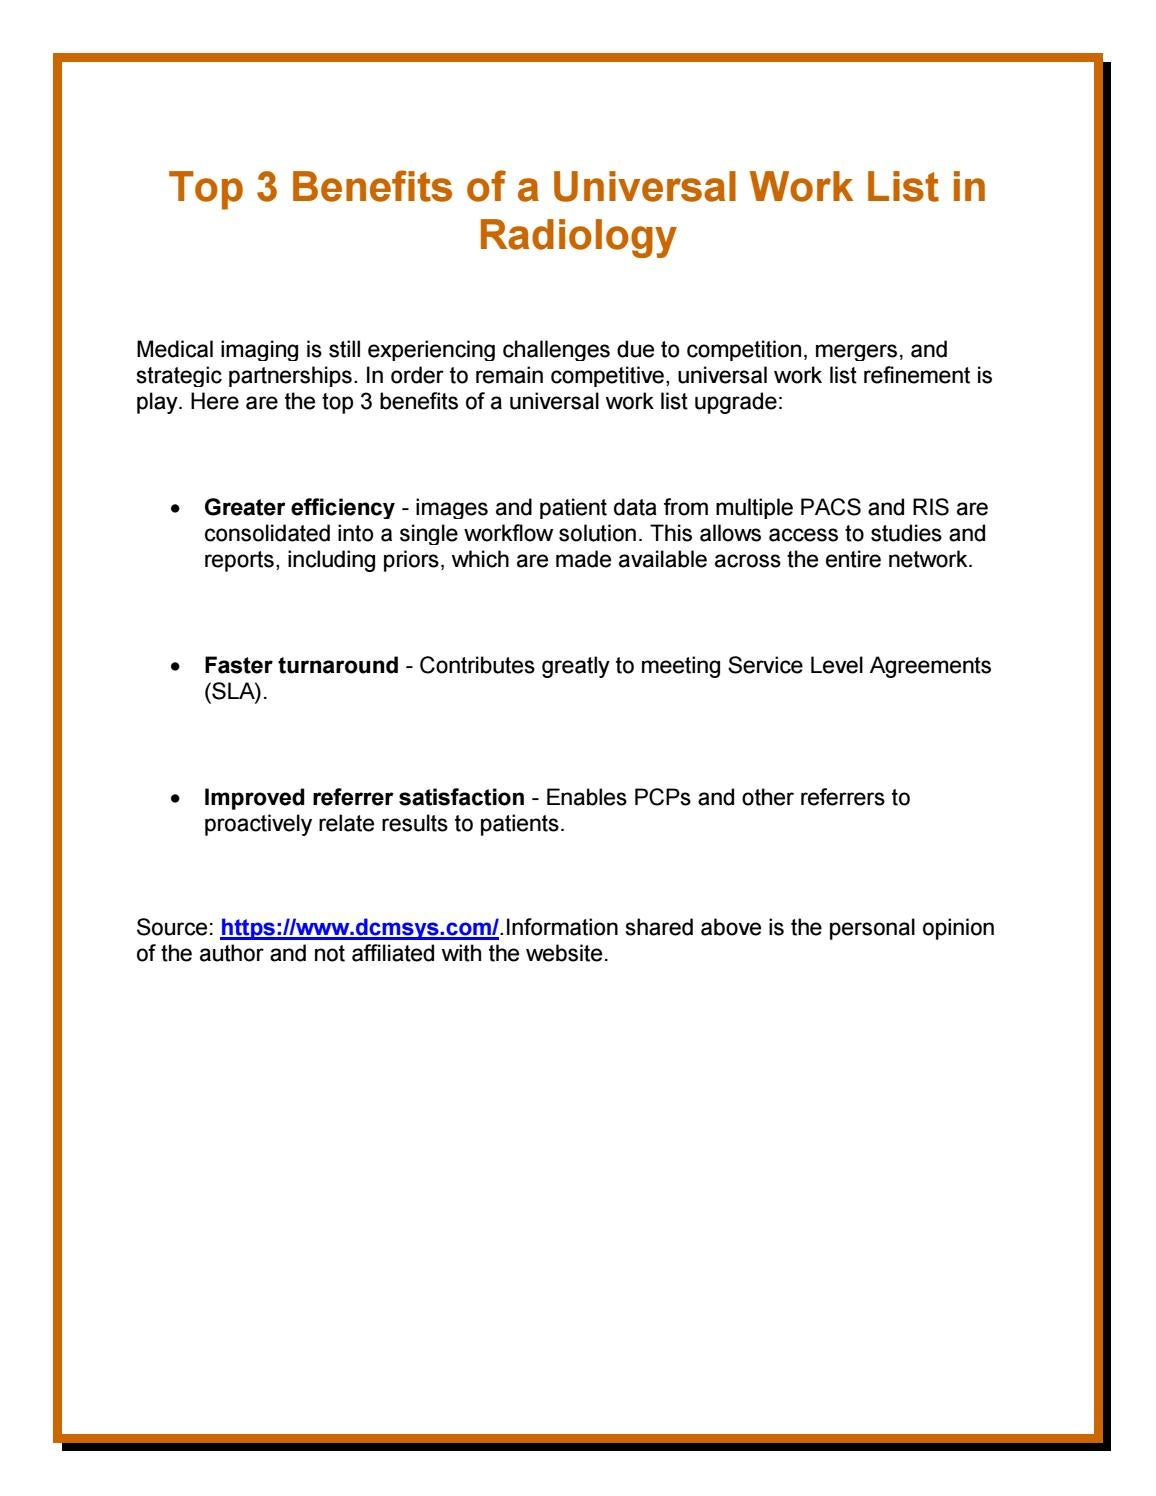 Top 3 Benefits Of A Universal Work List In Radiology By Franklinhall